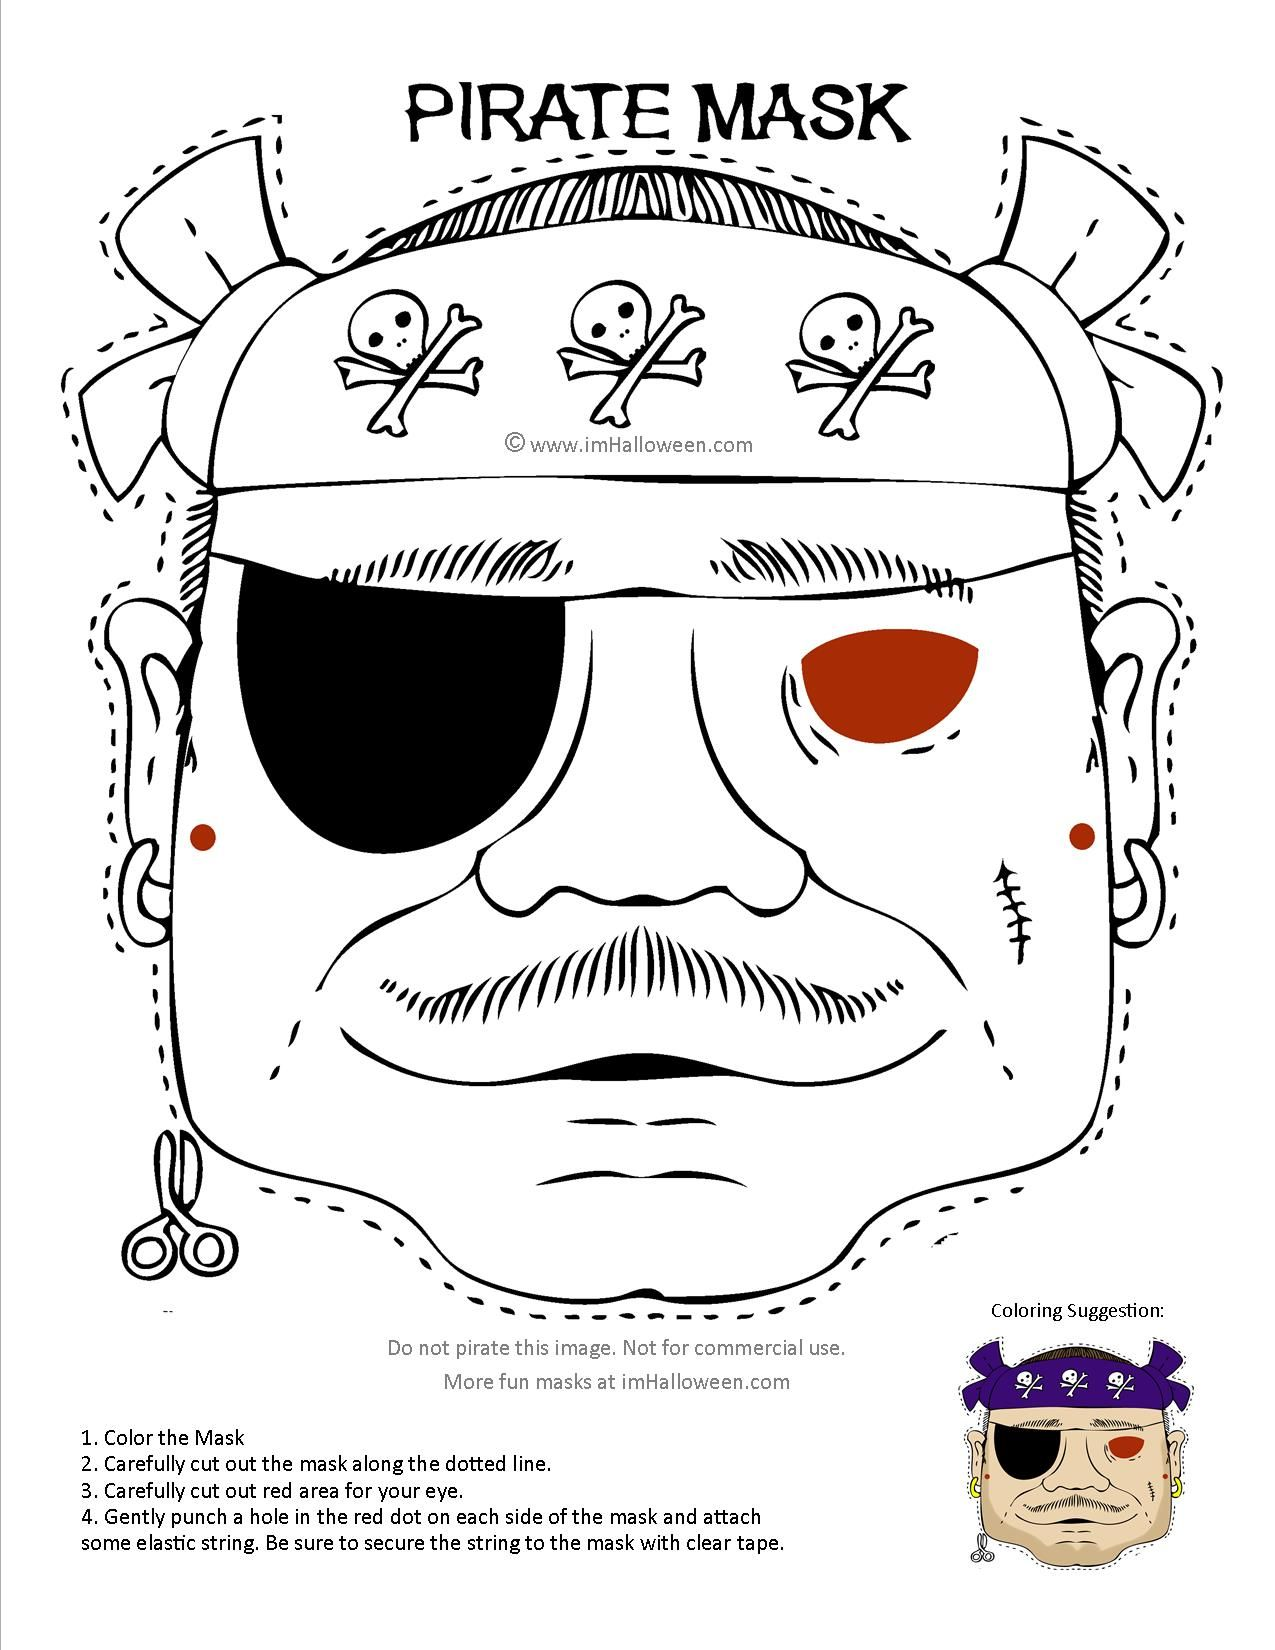 Pirate Mask coloring page printout. More fun at www